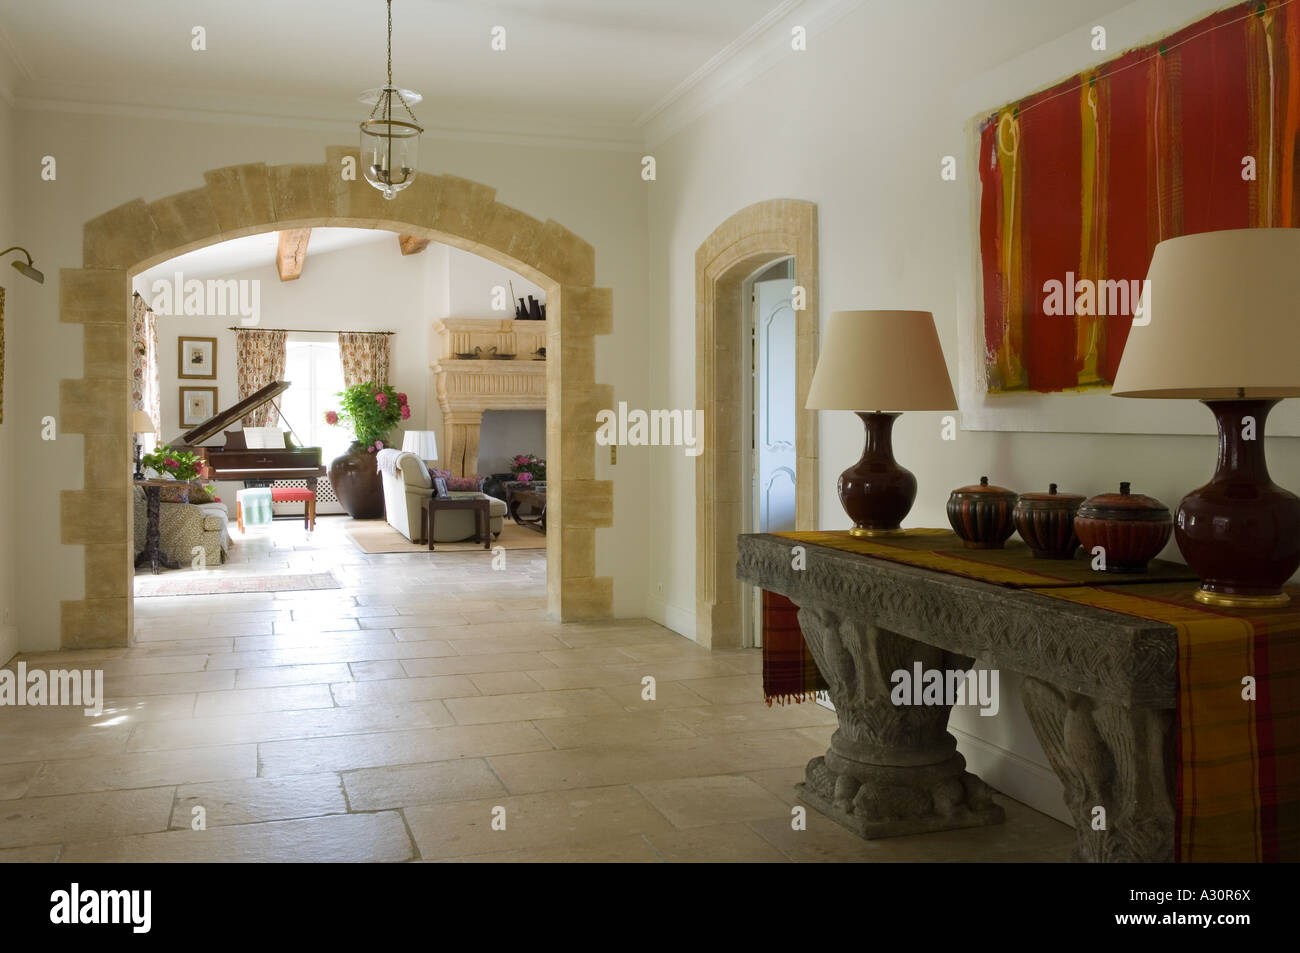 Console table with matching lamps in spacious limestone hallway - Stock Image